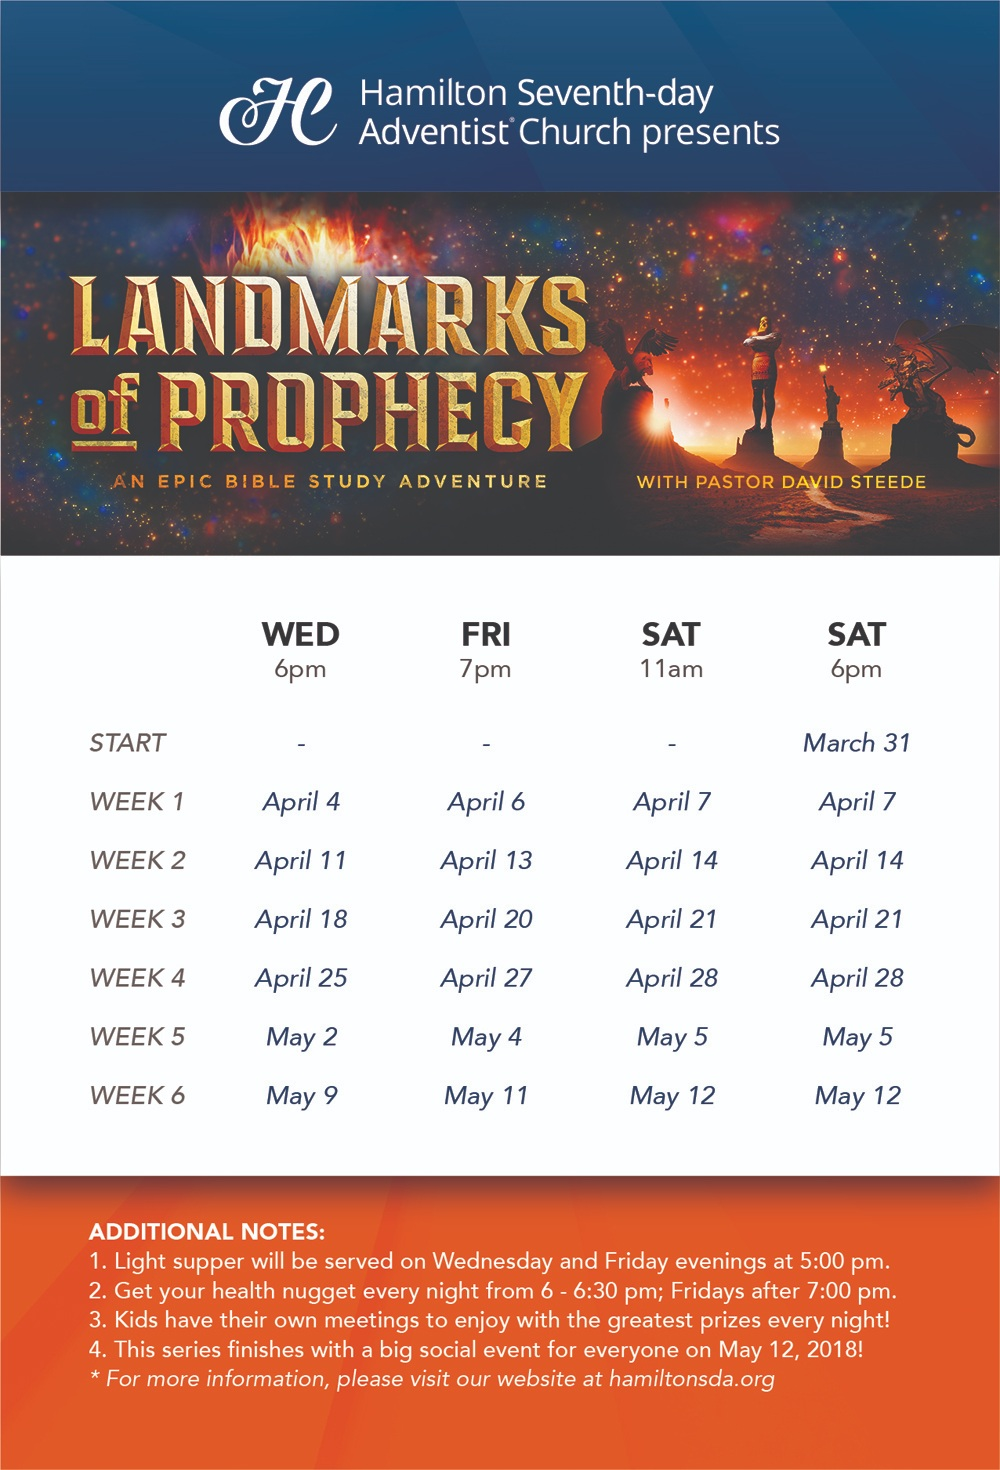 Landmark of Prophecy Bermuda March 27 2018 2